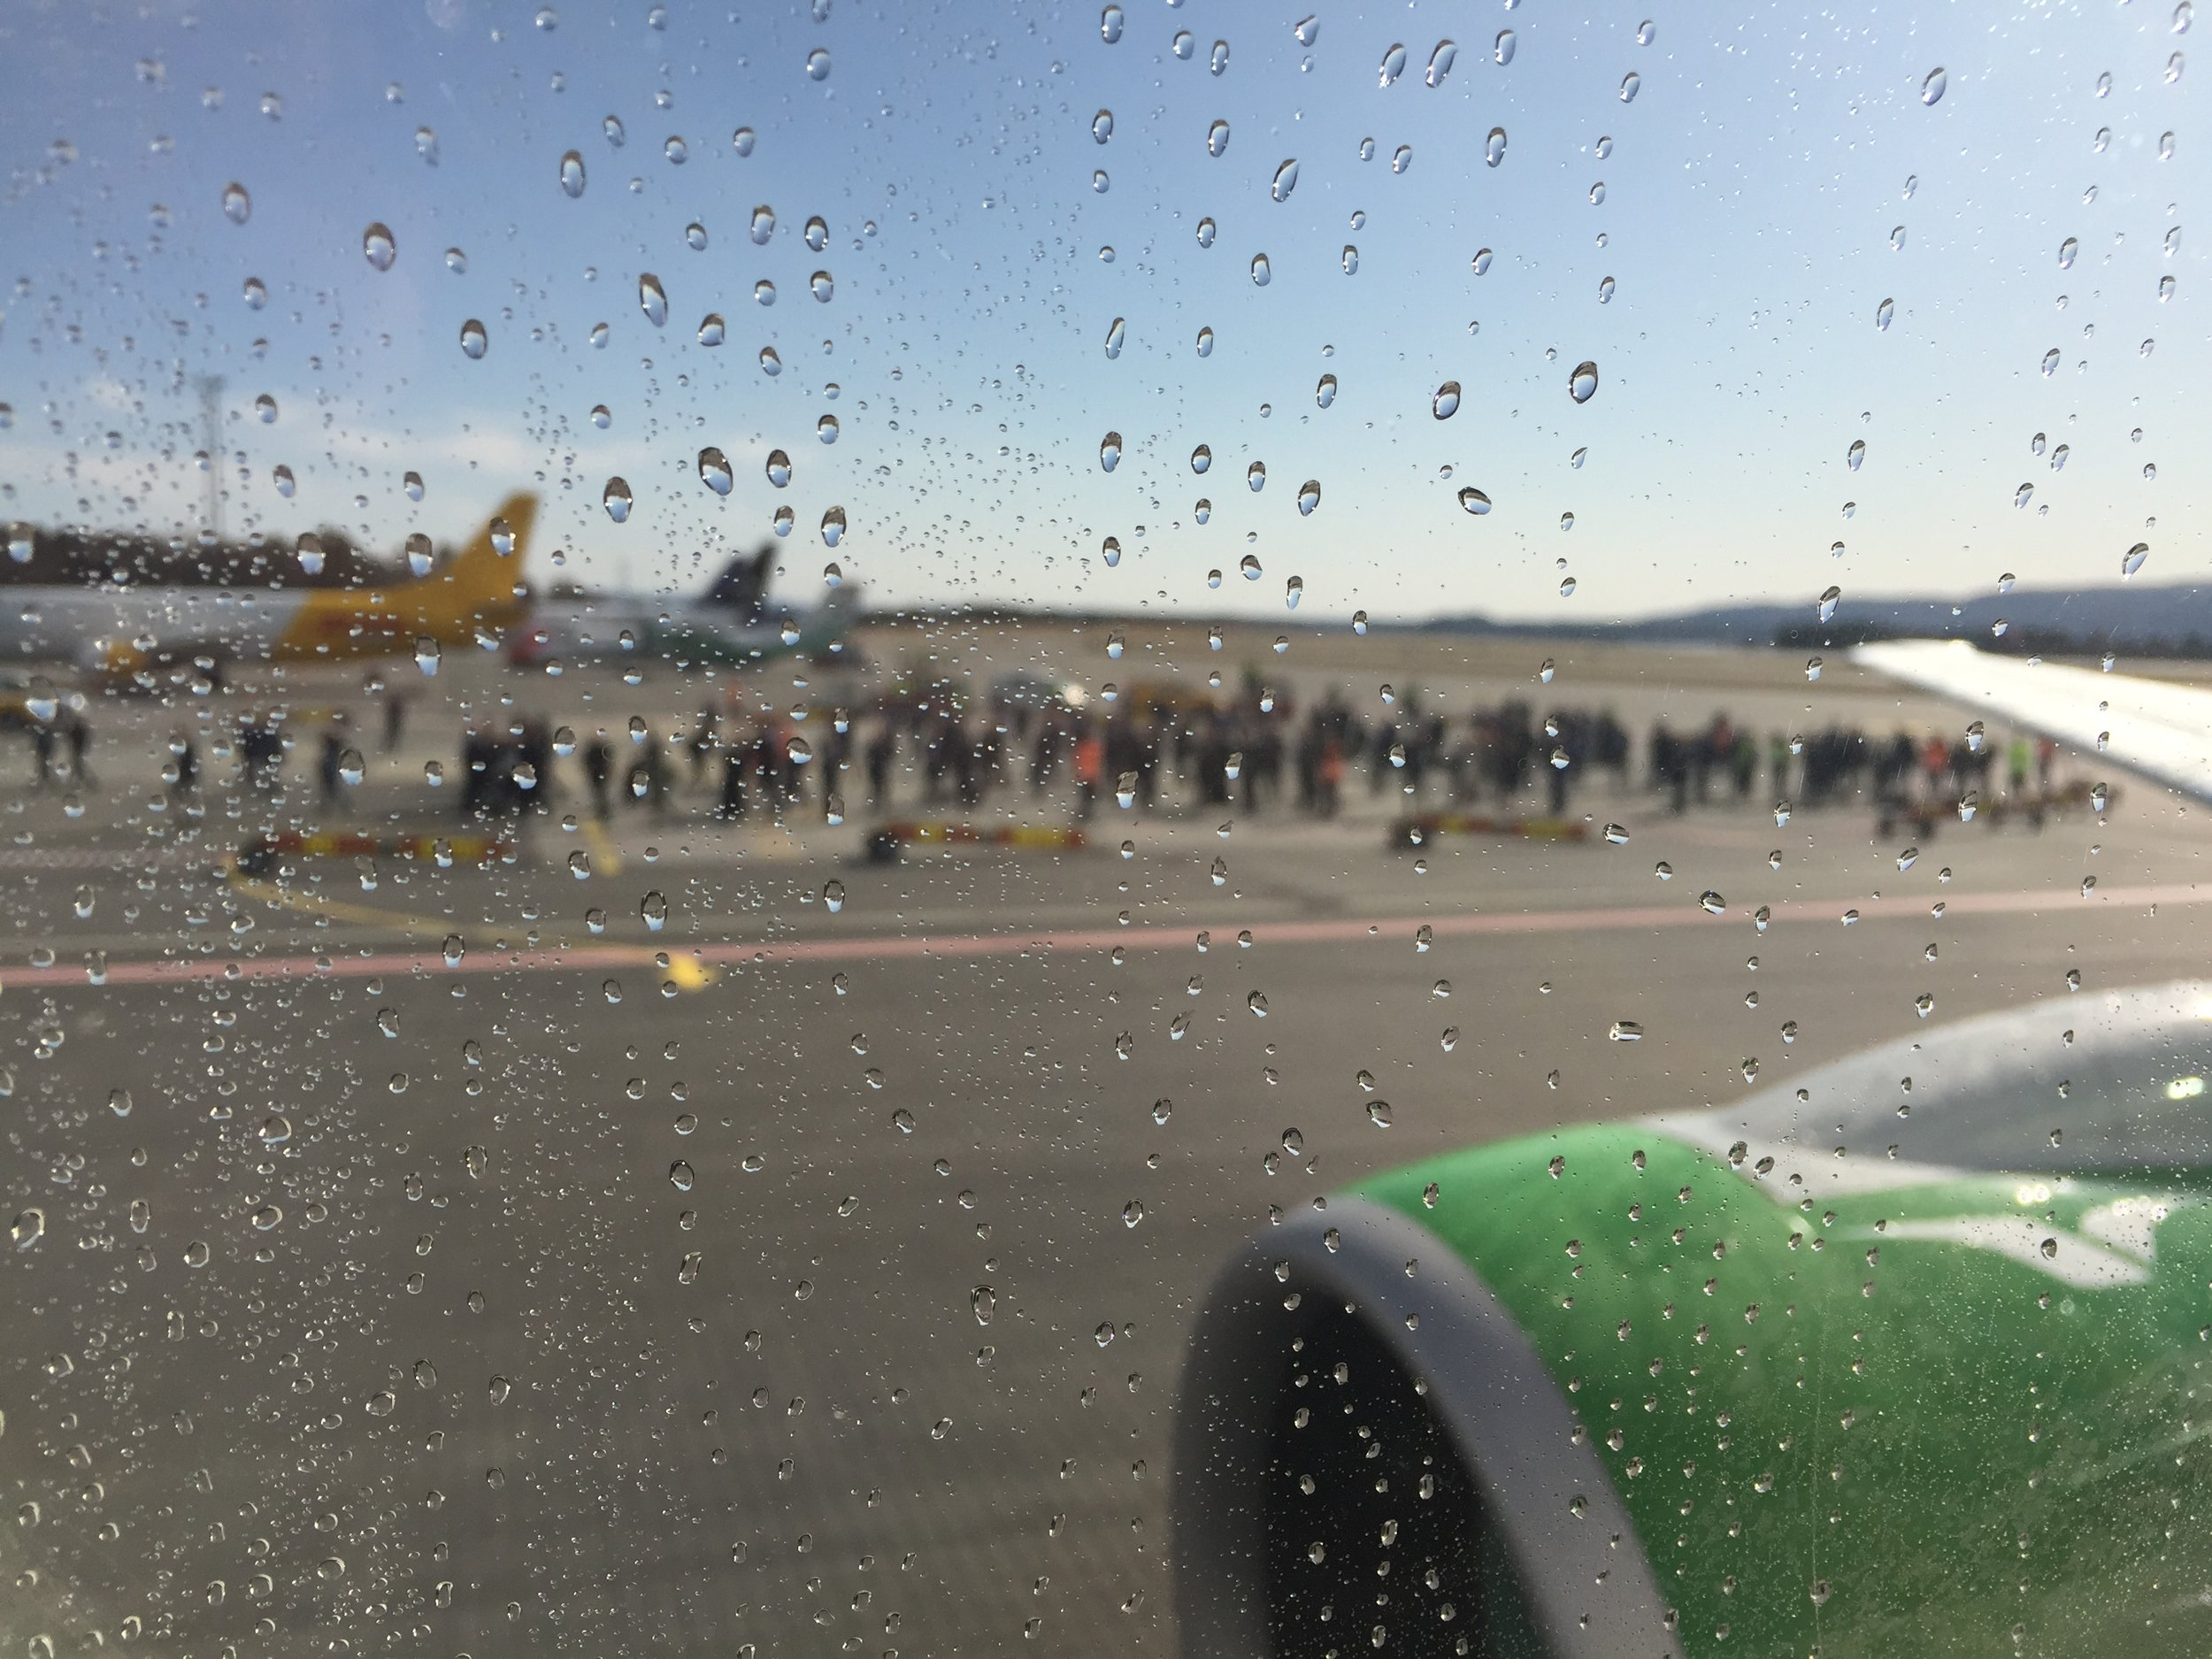 Right after the water salute